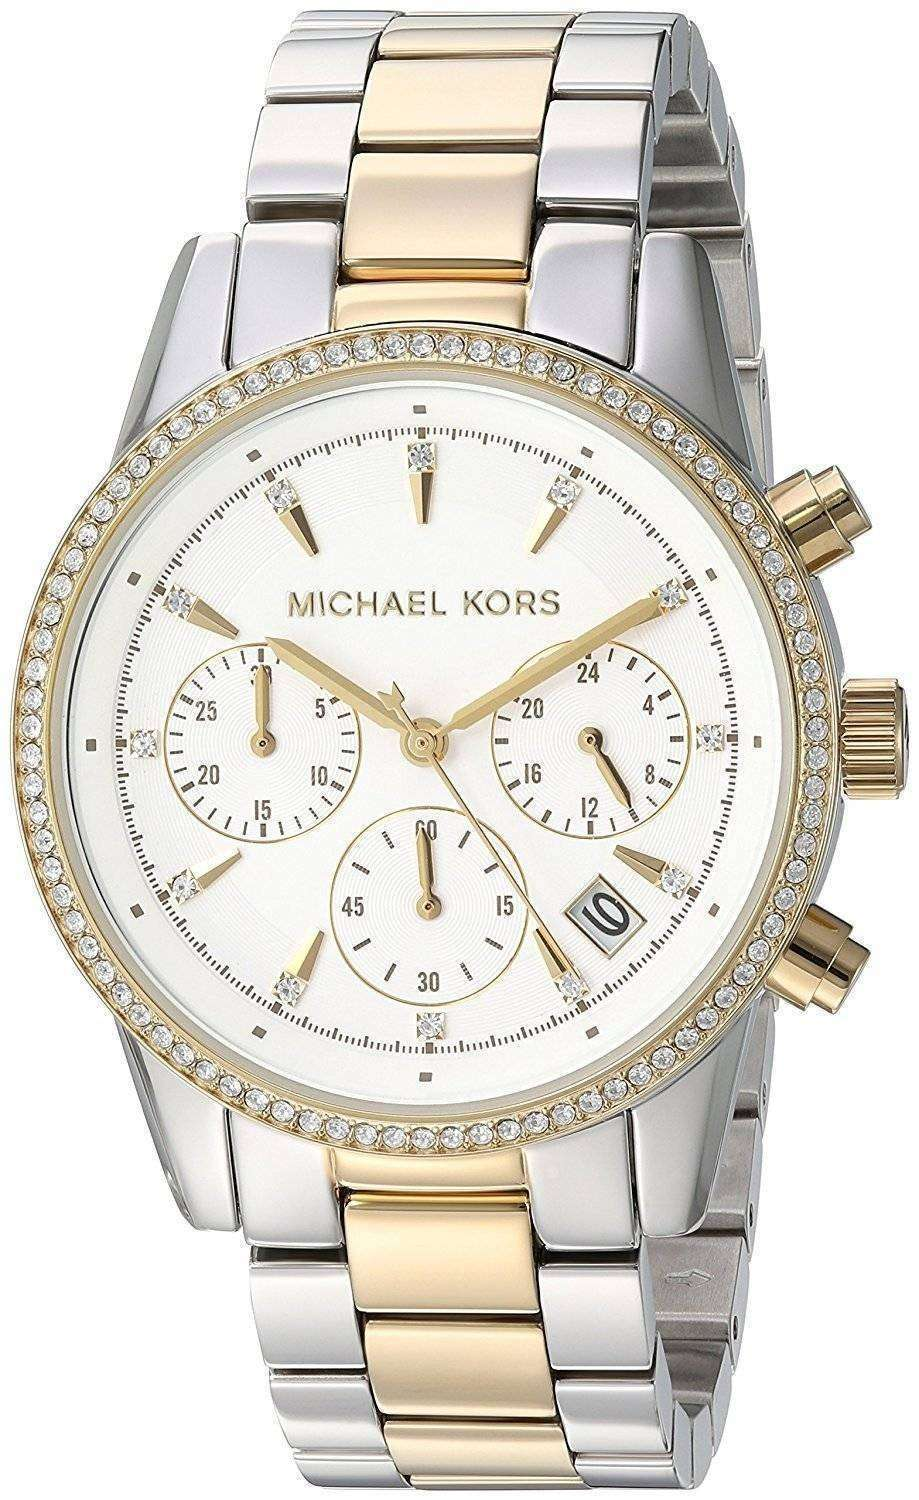 c1b65653d Michael Kors Ritz Chronograph Quartz Diamond Accent MK6474 Women's Watch